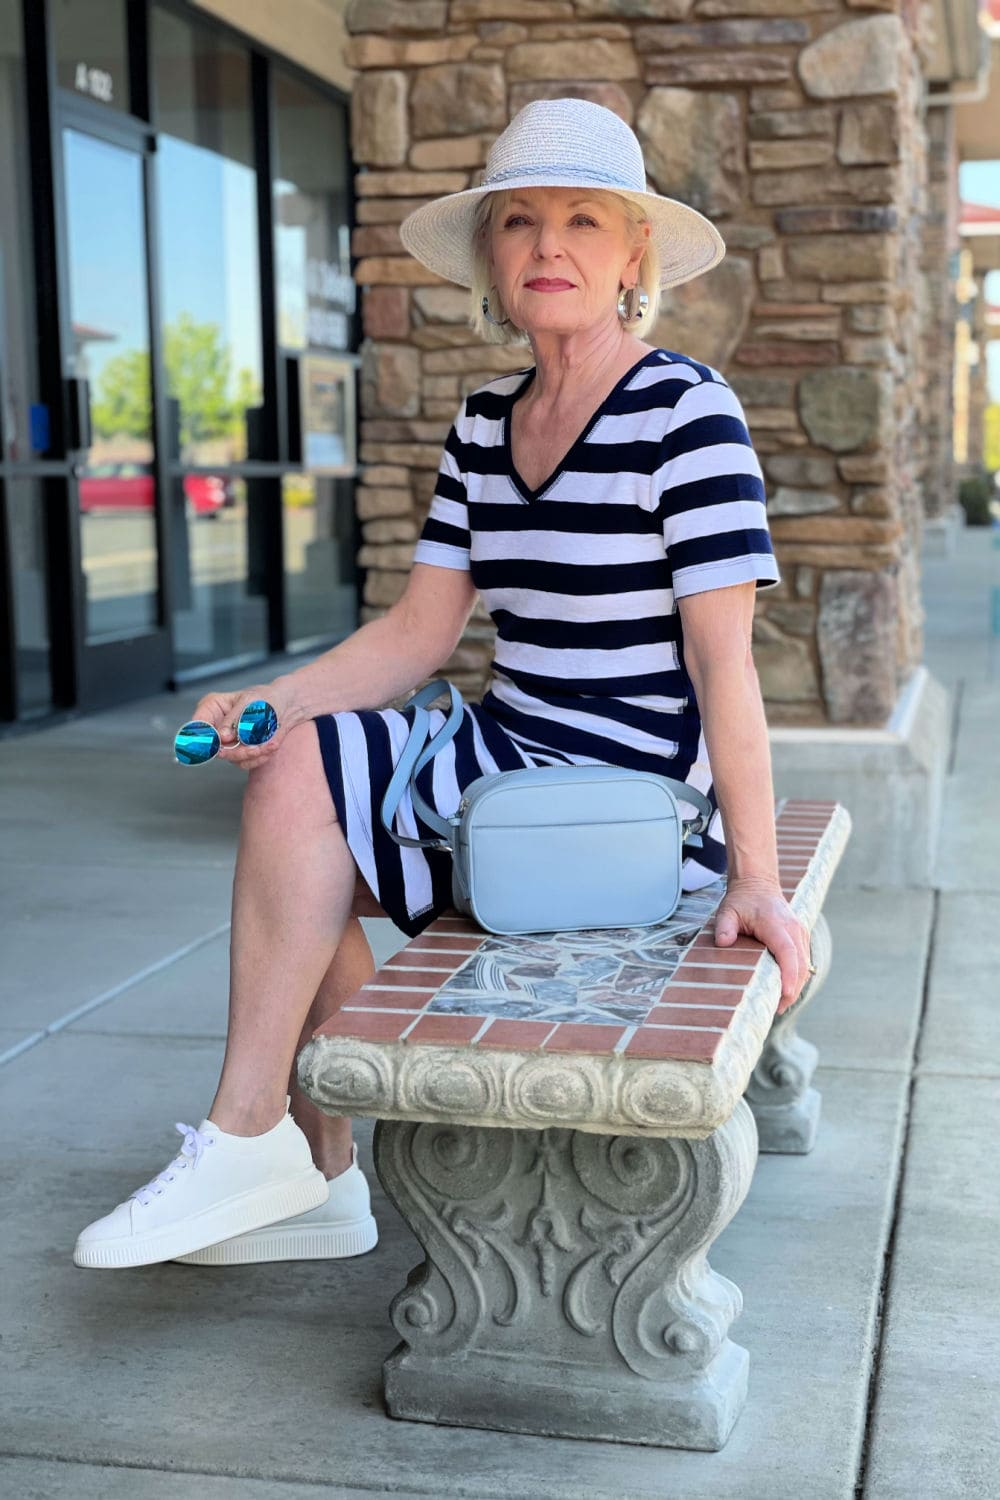 blonde woman sitting on bench wearing striped dress and straw hat